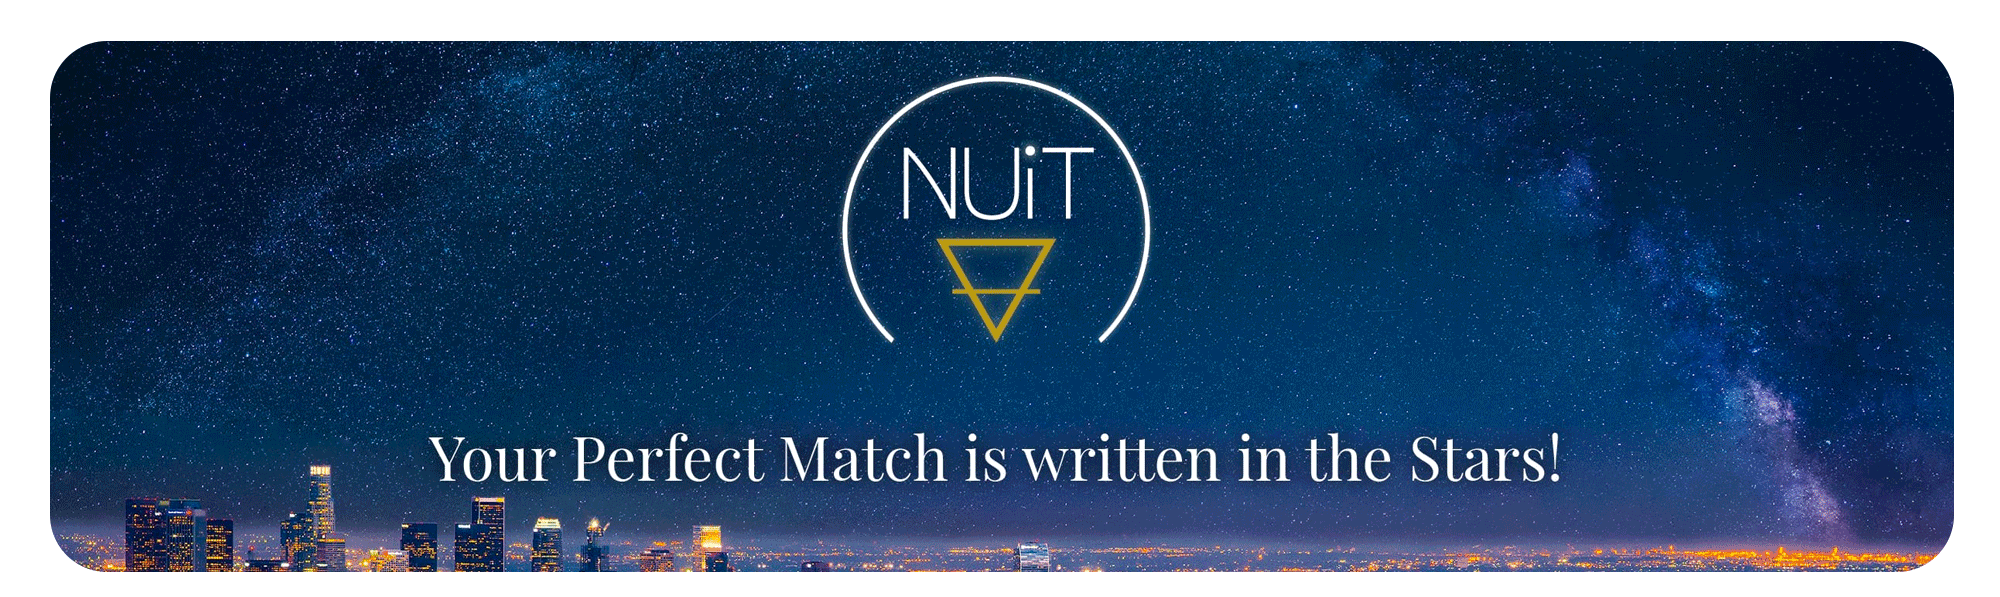 Real matches is dtf List of